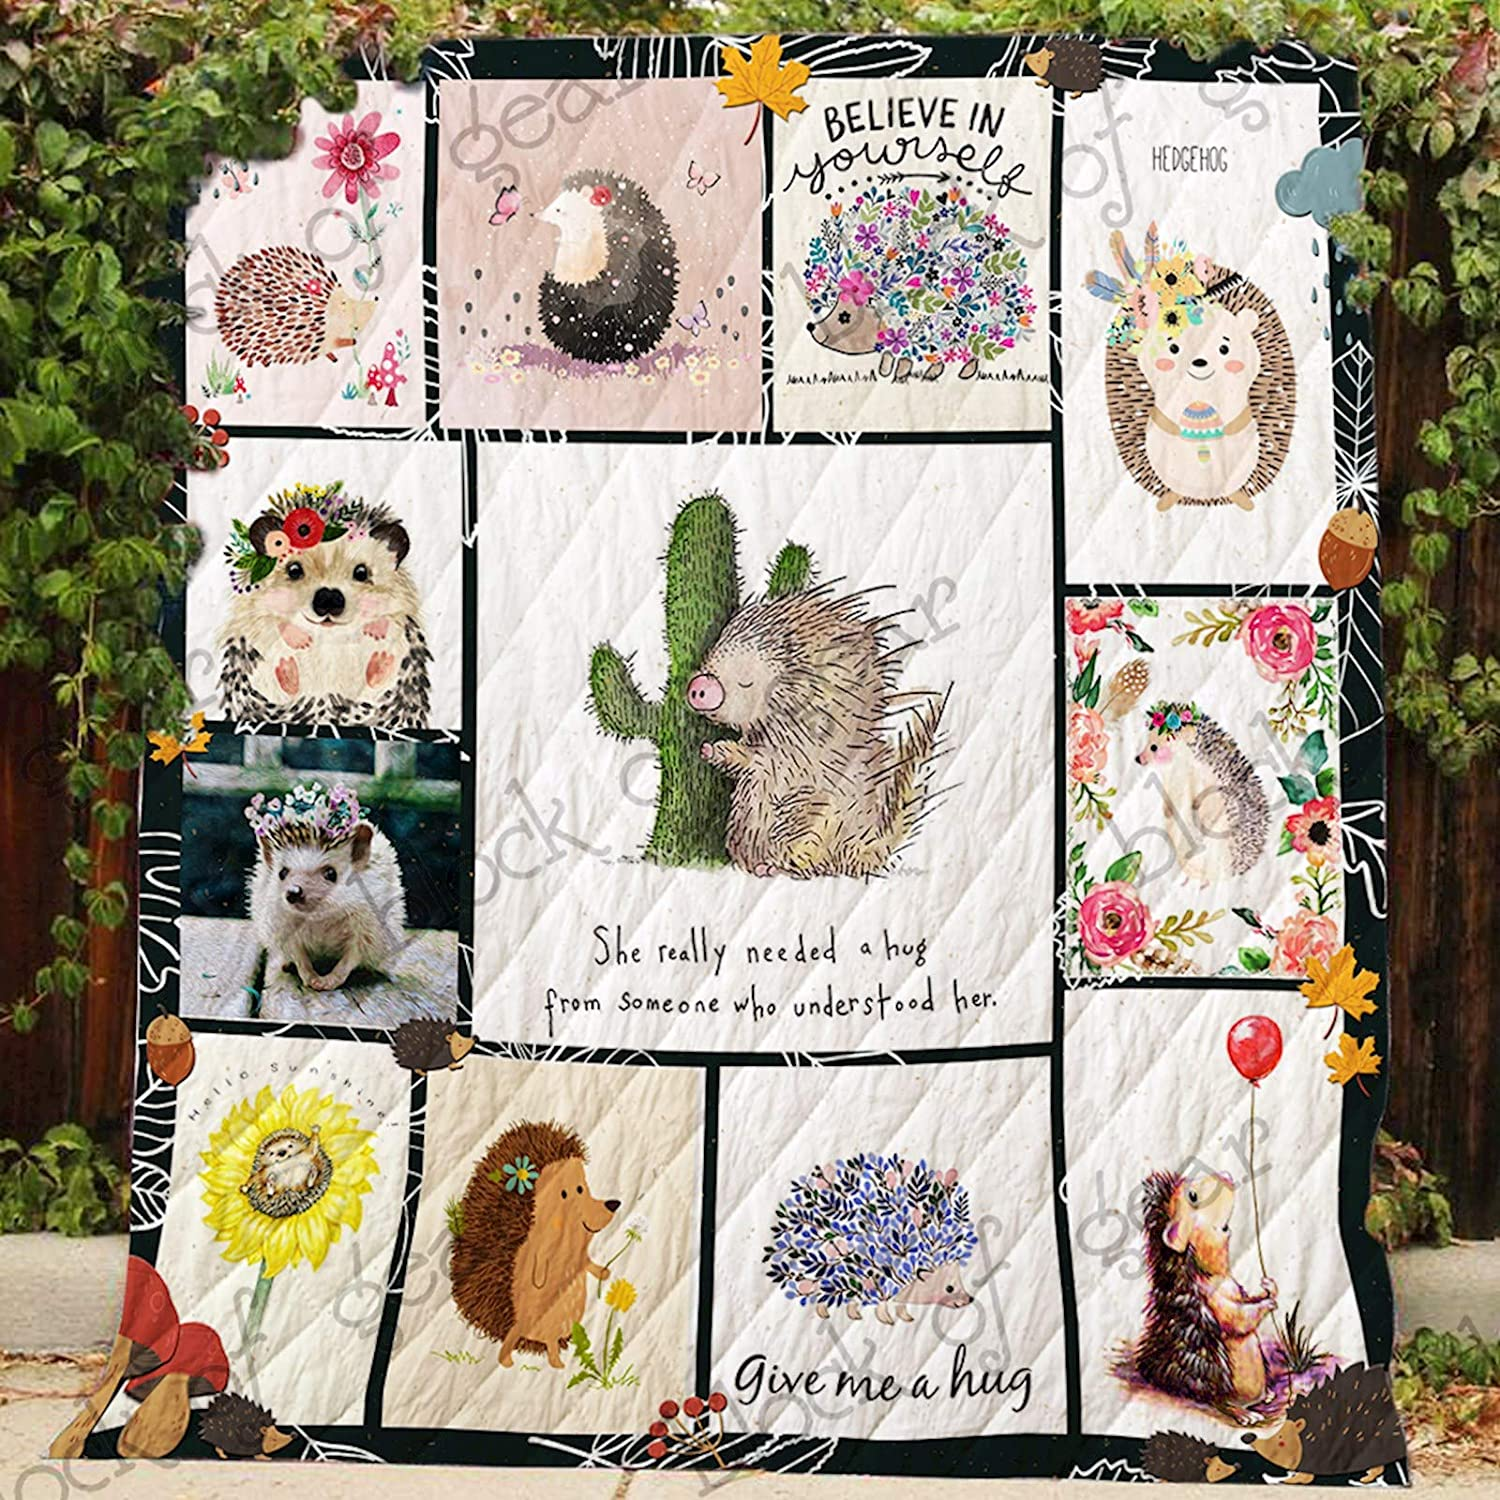 Give Me A Hug Hedgehog Quilt P361, Queen All-Season Quilts Comforters with Reversible Cotton King Queen Twin Size - Best Decorative Quilts-Unique Quilted for Gifts